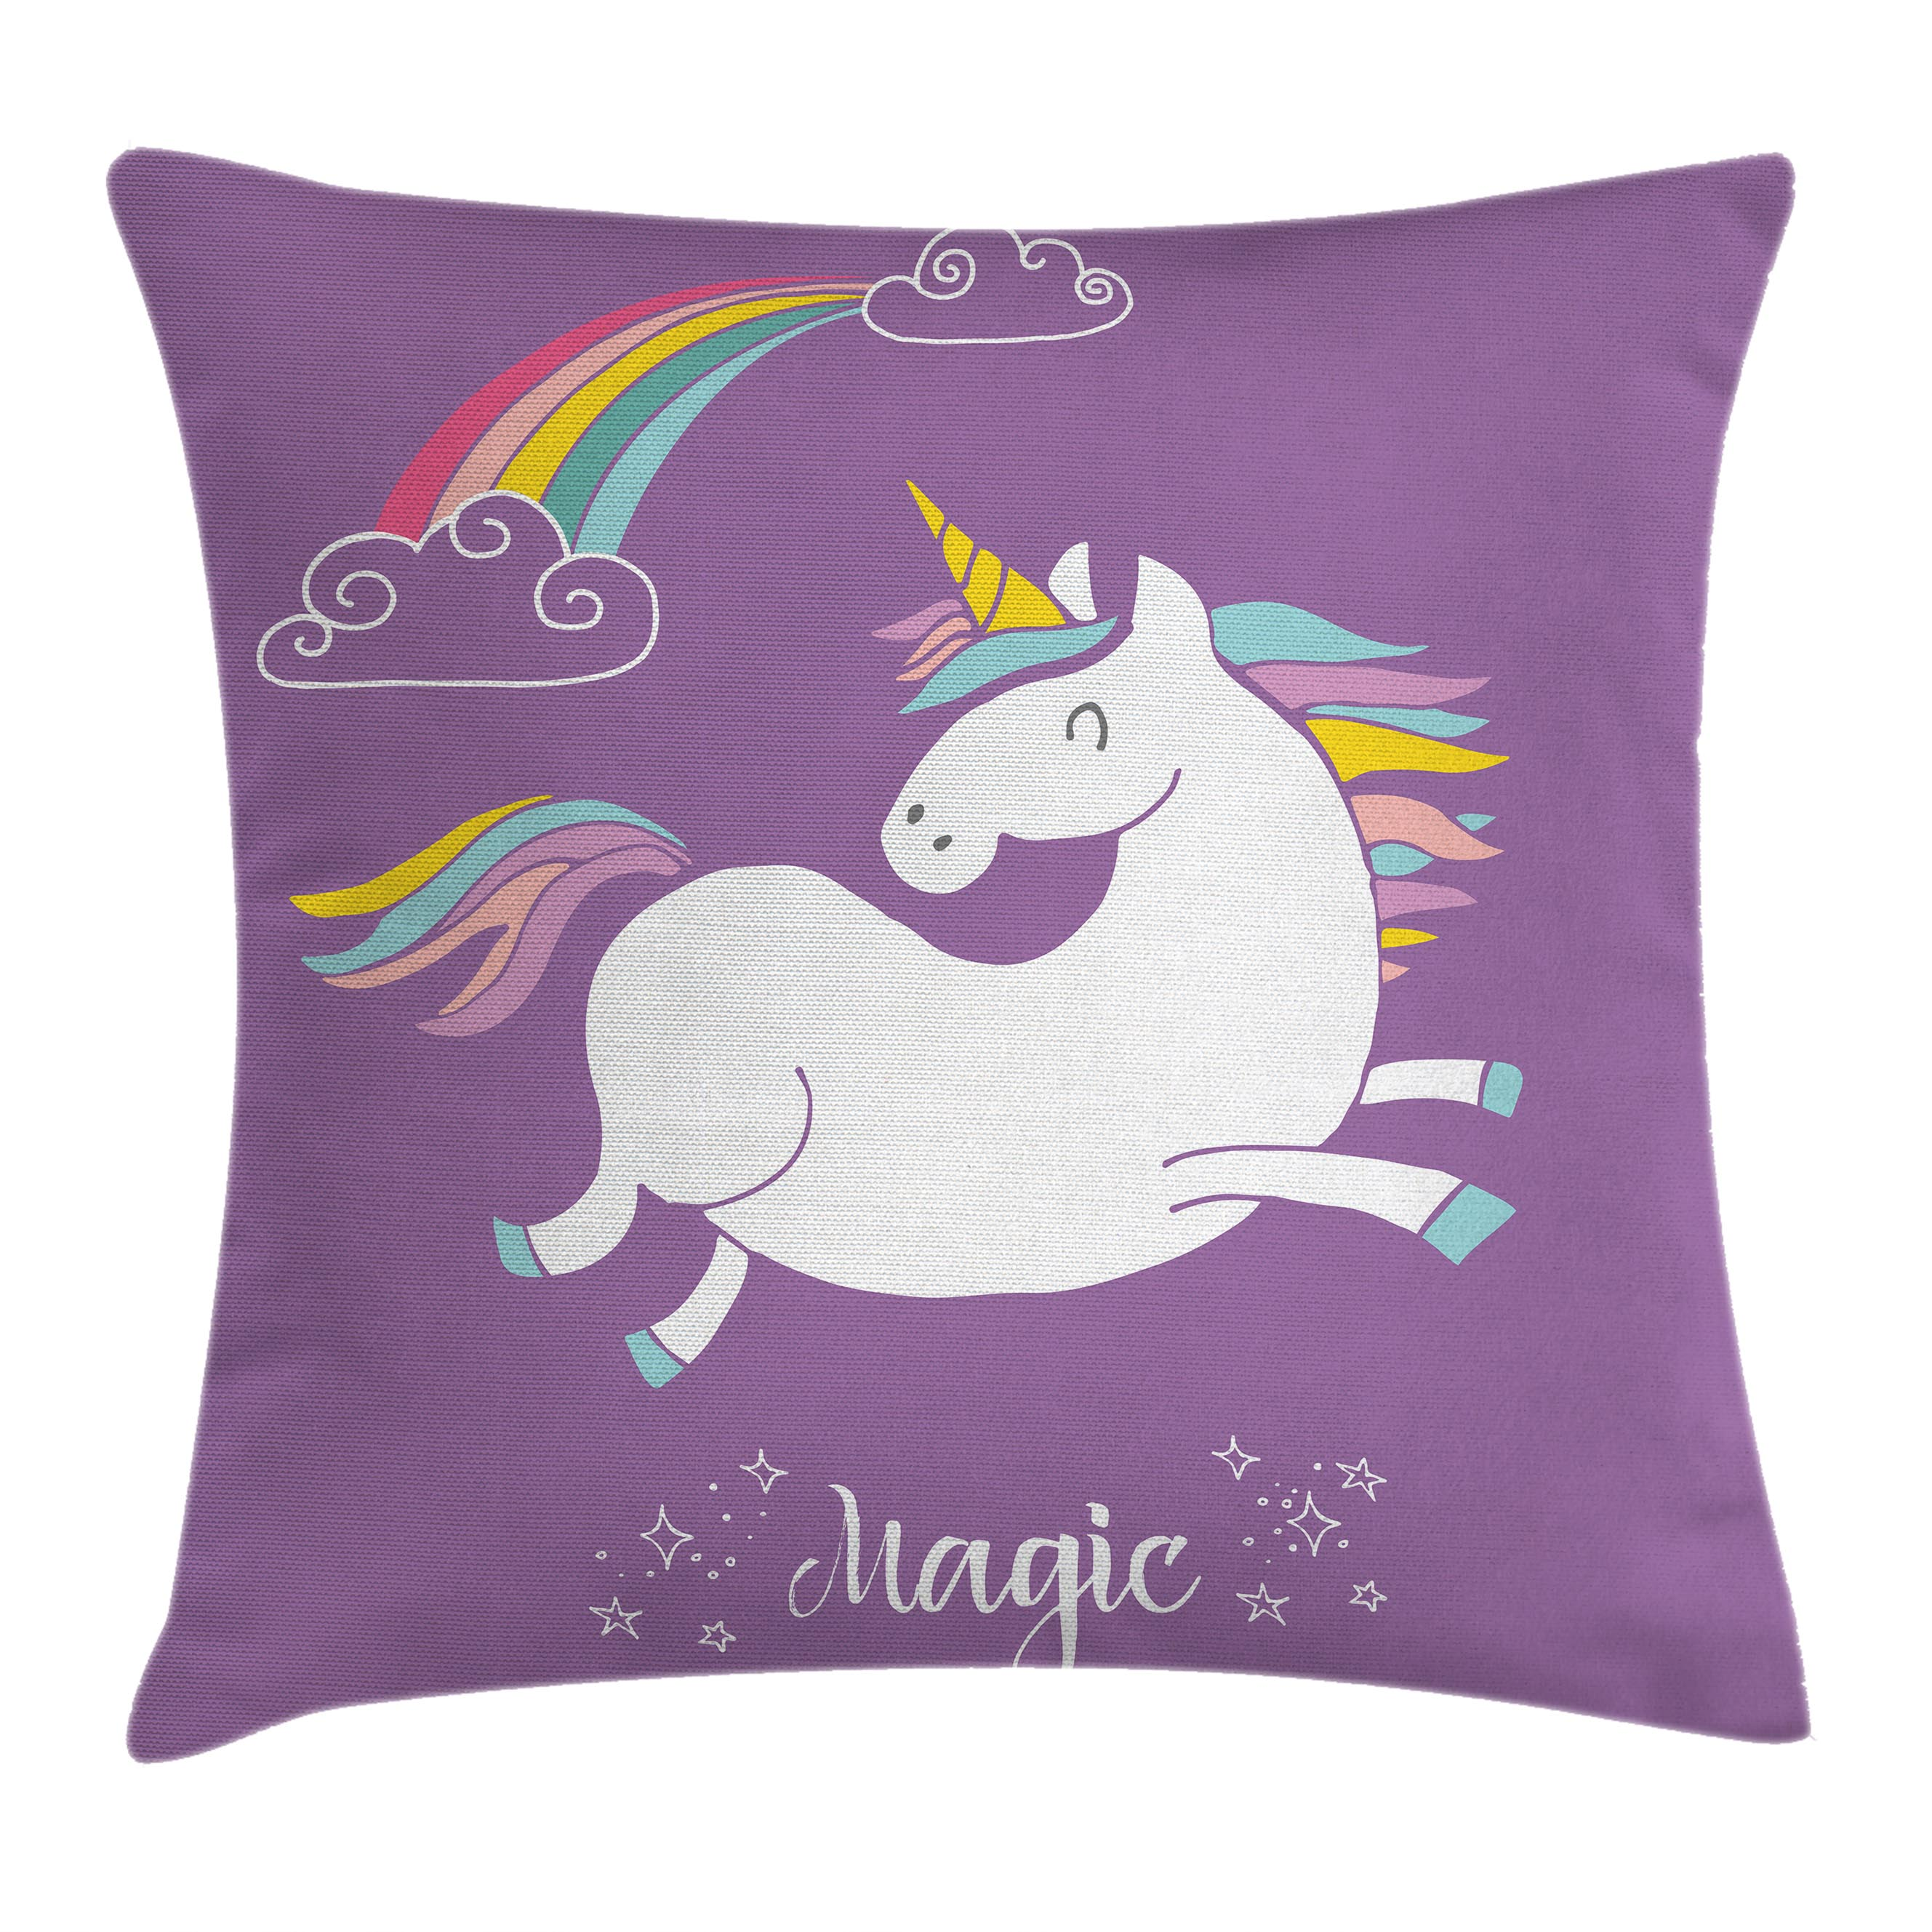 Unicorn Home and Kids Decor Throw Pillow Cushion Cover, Mythical Animal with Clouds and Rainbow Figure Fairy Image, Decorative Square Accent Pillow Case, 16 X 16 Inches, Purple White, by Ambesonne